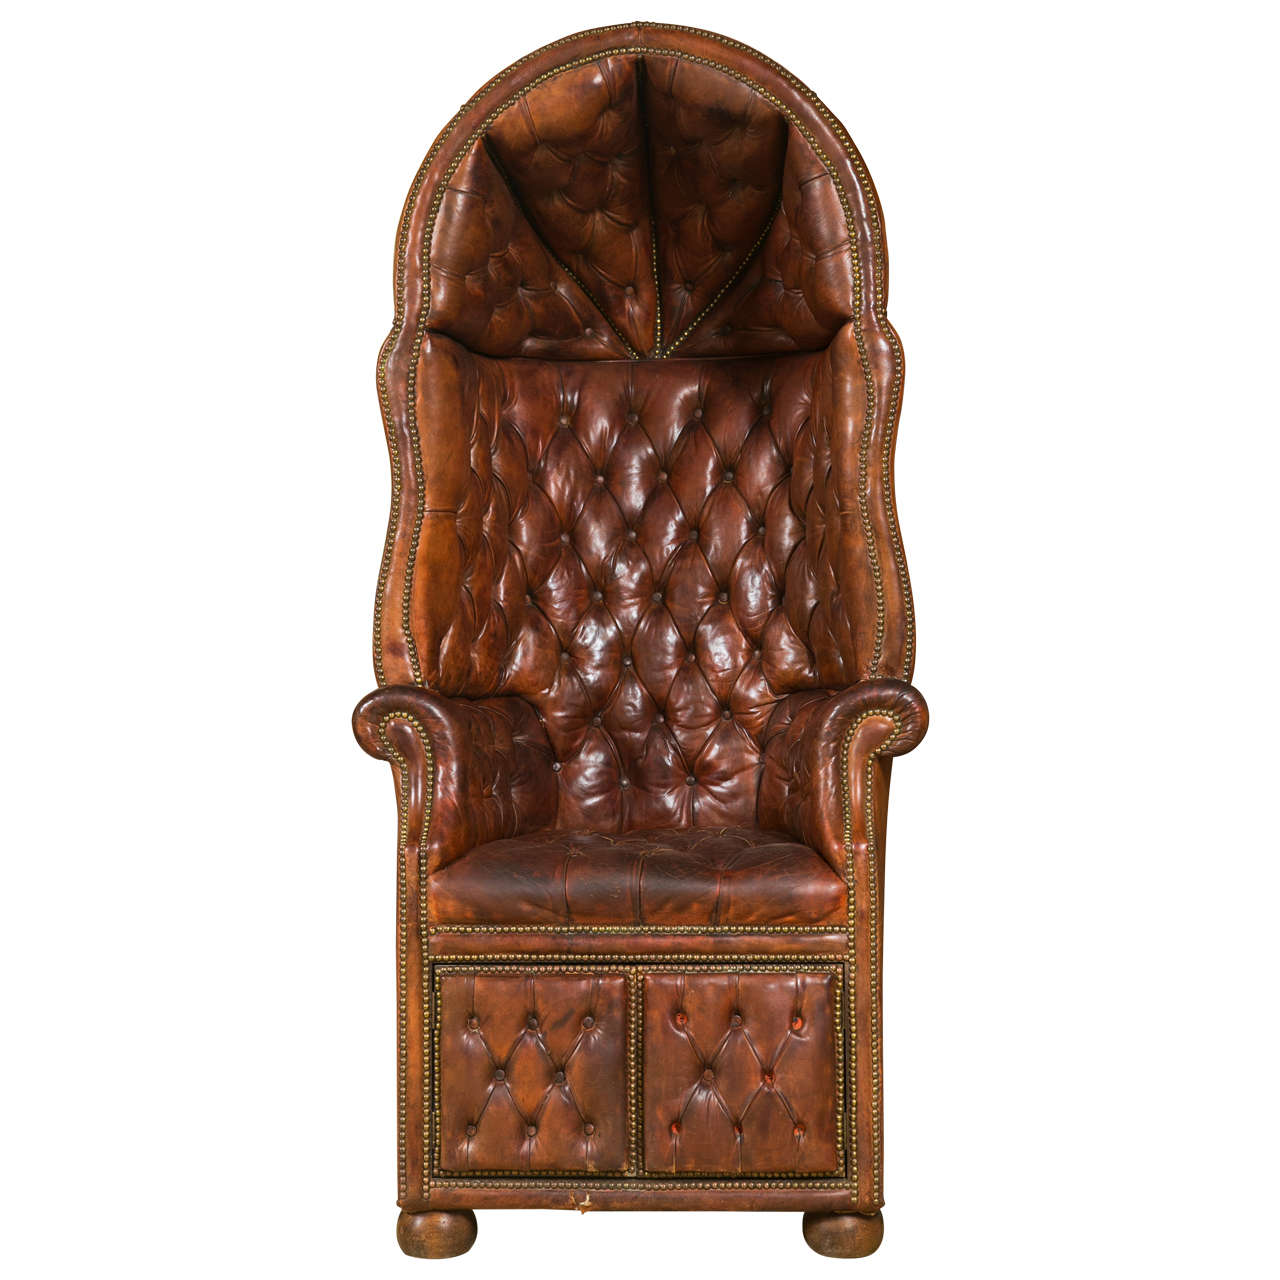 Porter Chair 19th Century English Leather Porter Chair At 1stdibs